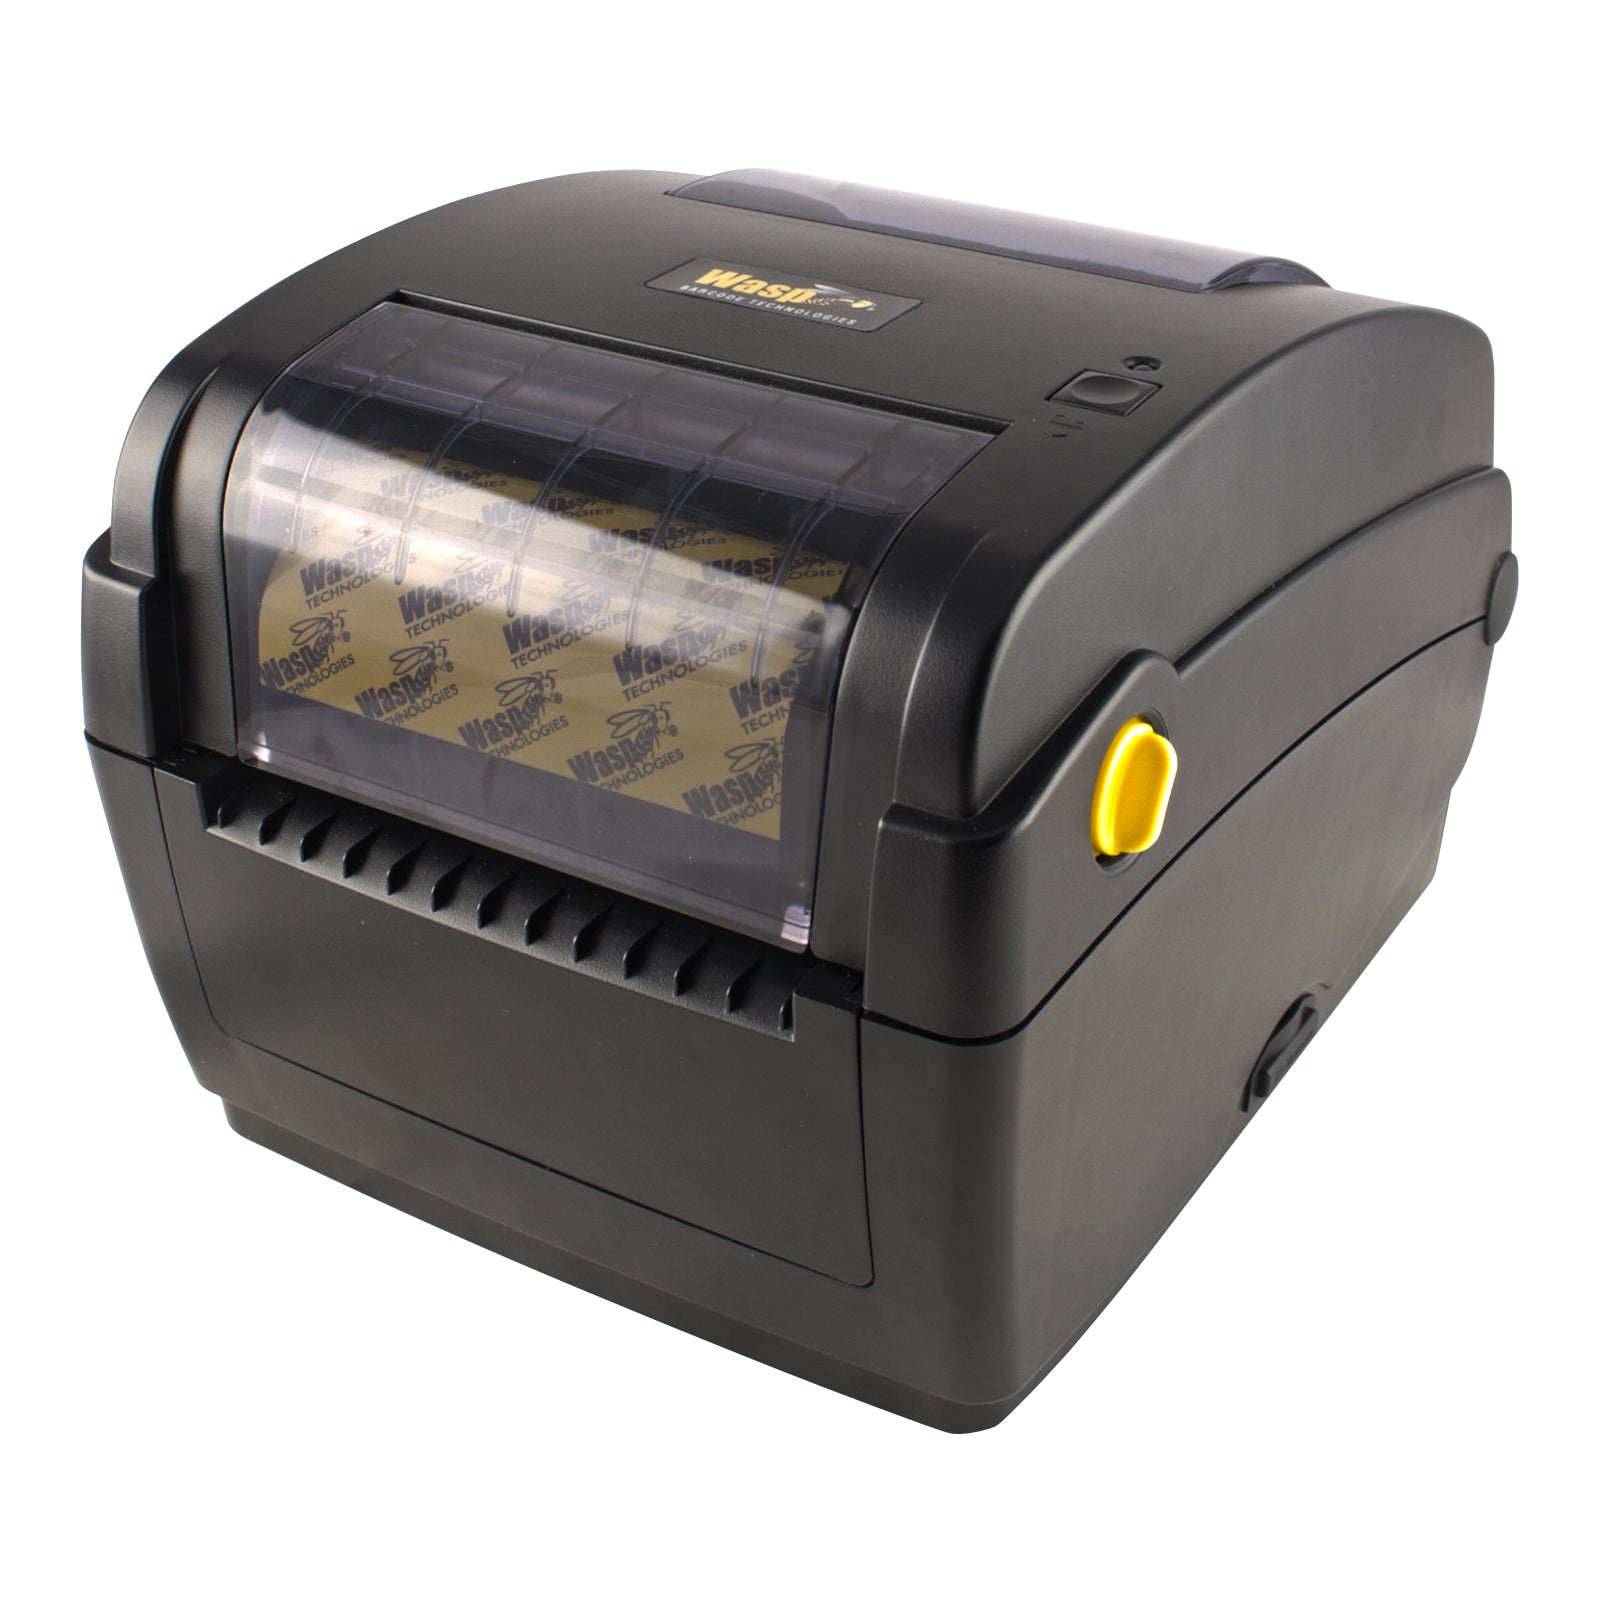 Wasp WPL304 Thermal Transfer Direct Thermal Desktop Barcode Printer (4 inch print width) Ready-to-Go Kit - 633808404055